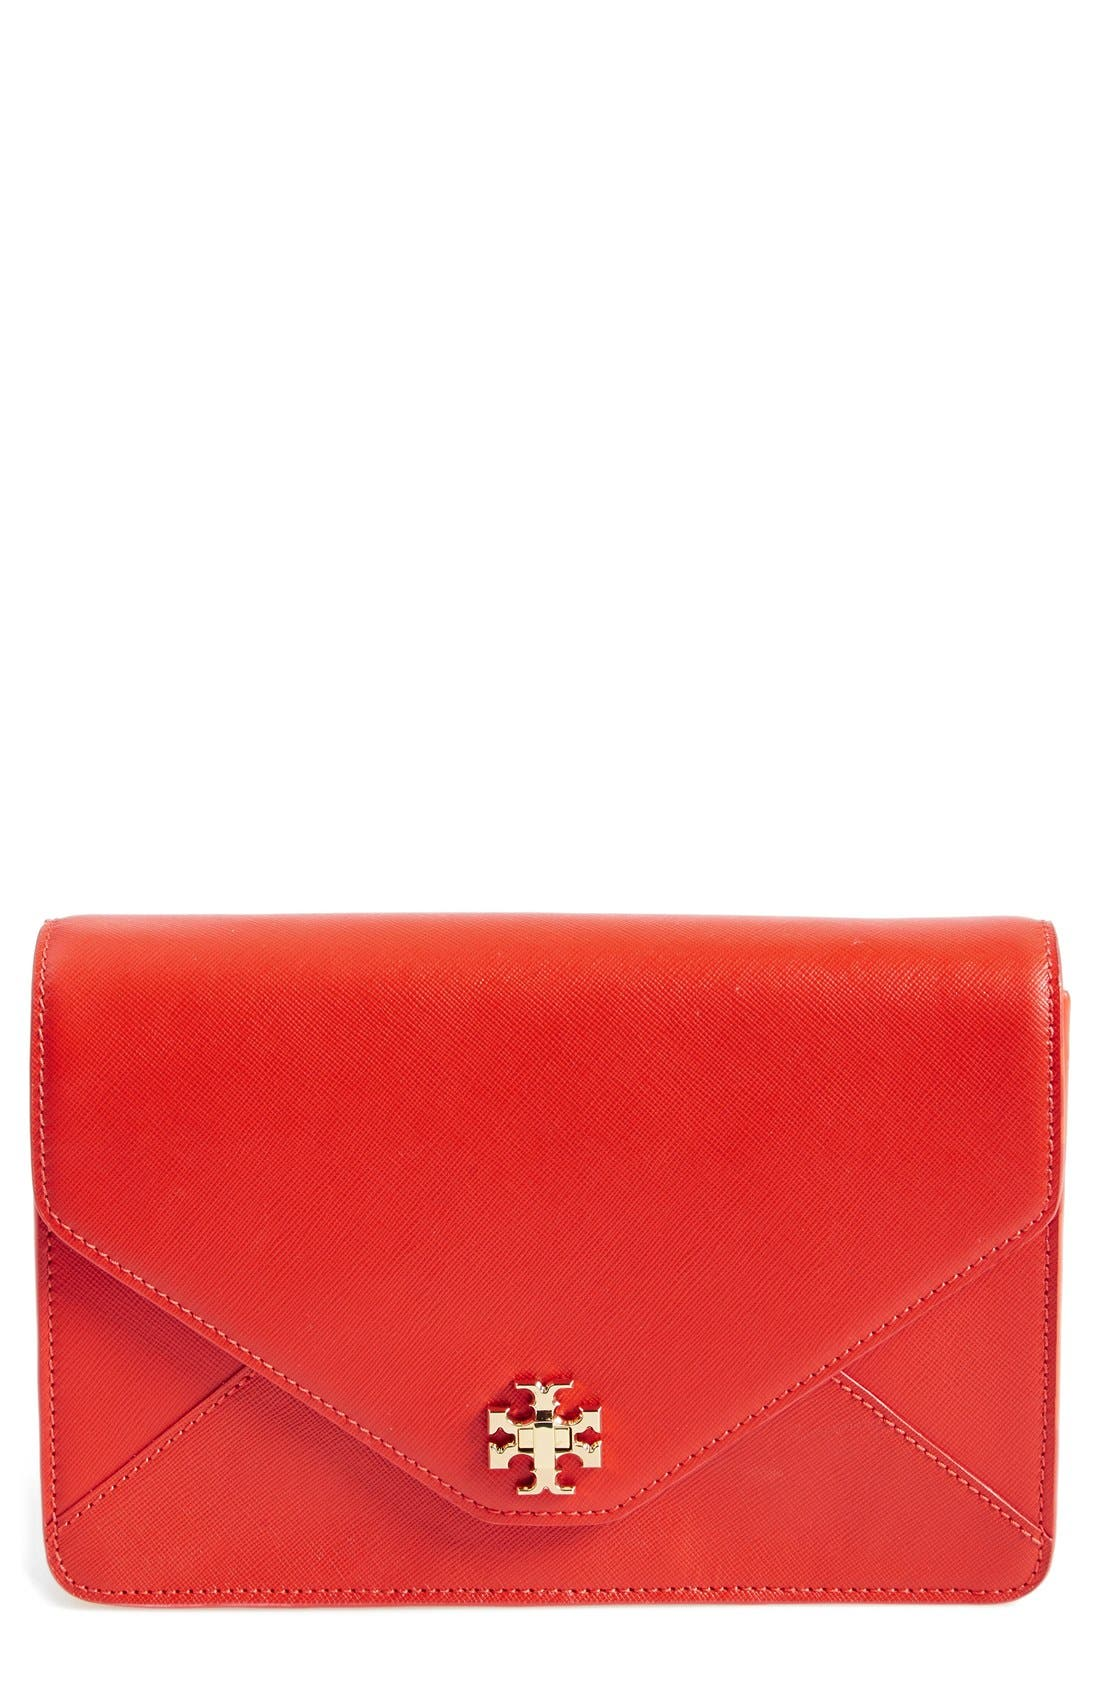 Main Image - Tory Burch 'Kira' Envelope Clutch